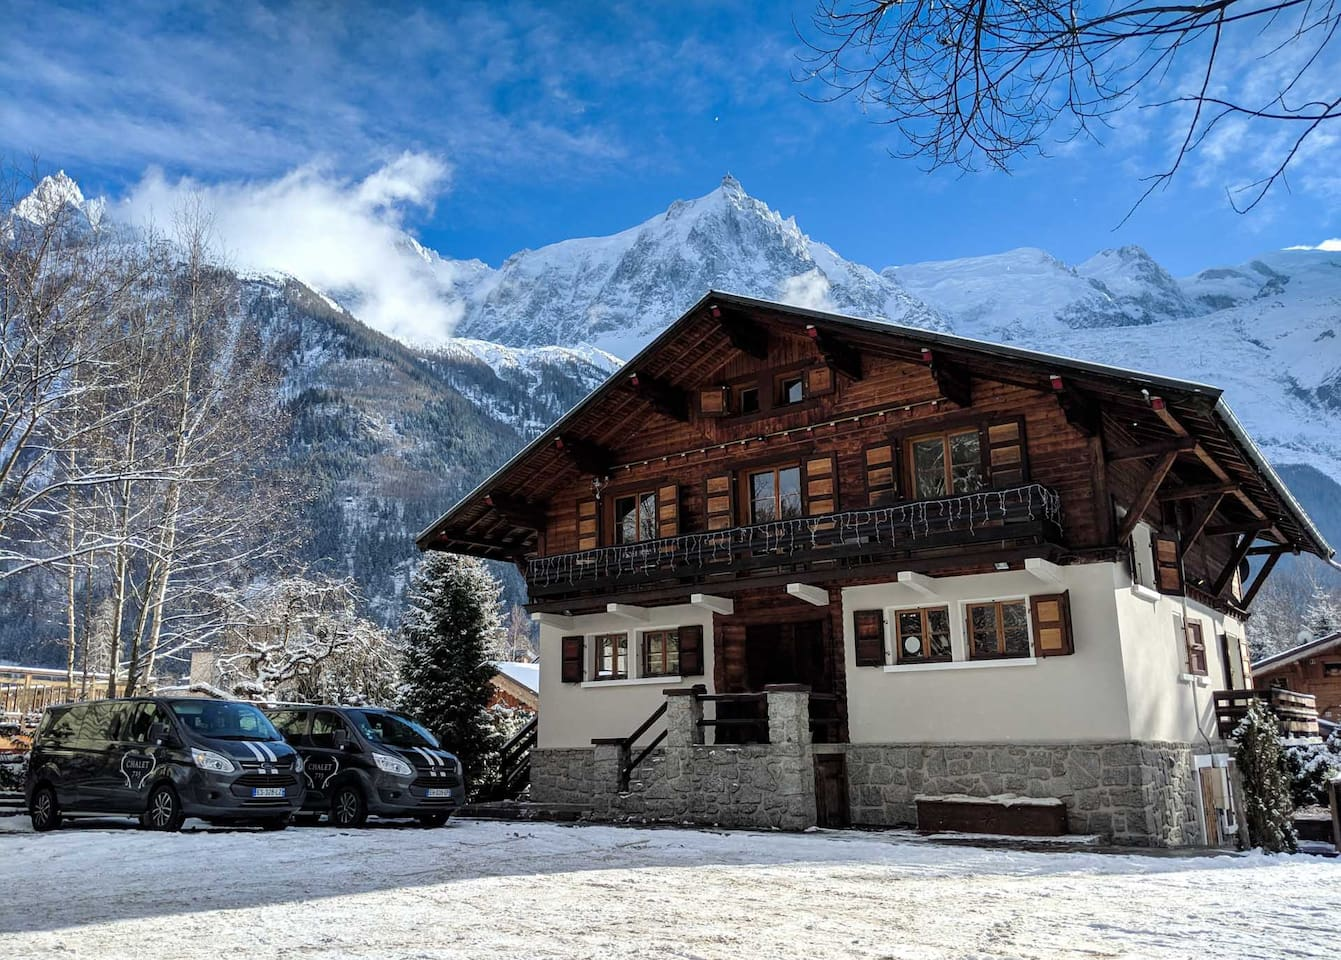 Chalet 715 in Winter with client minibuses for in-resort transfers